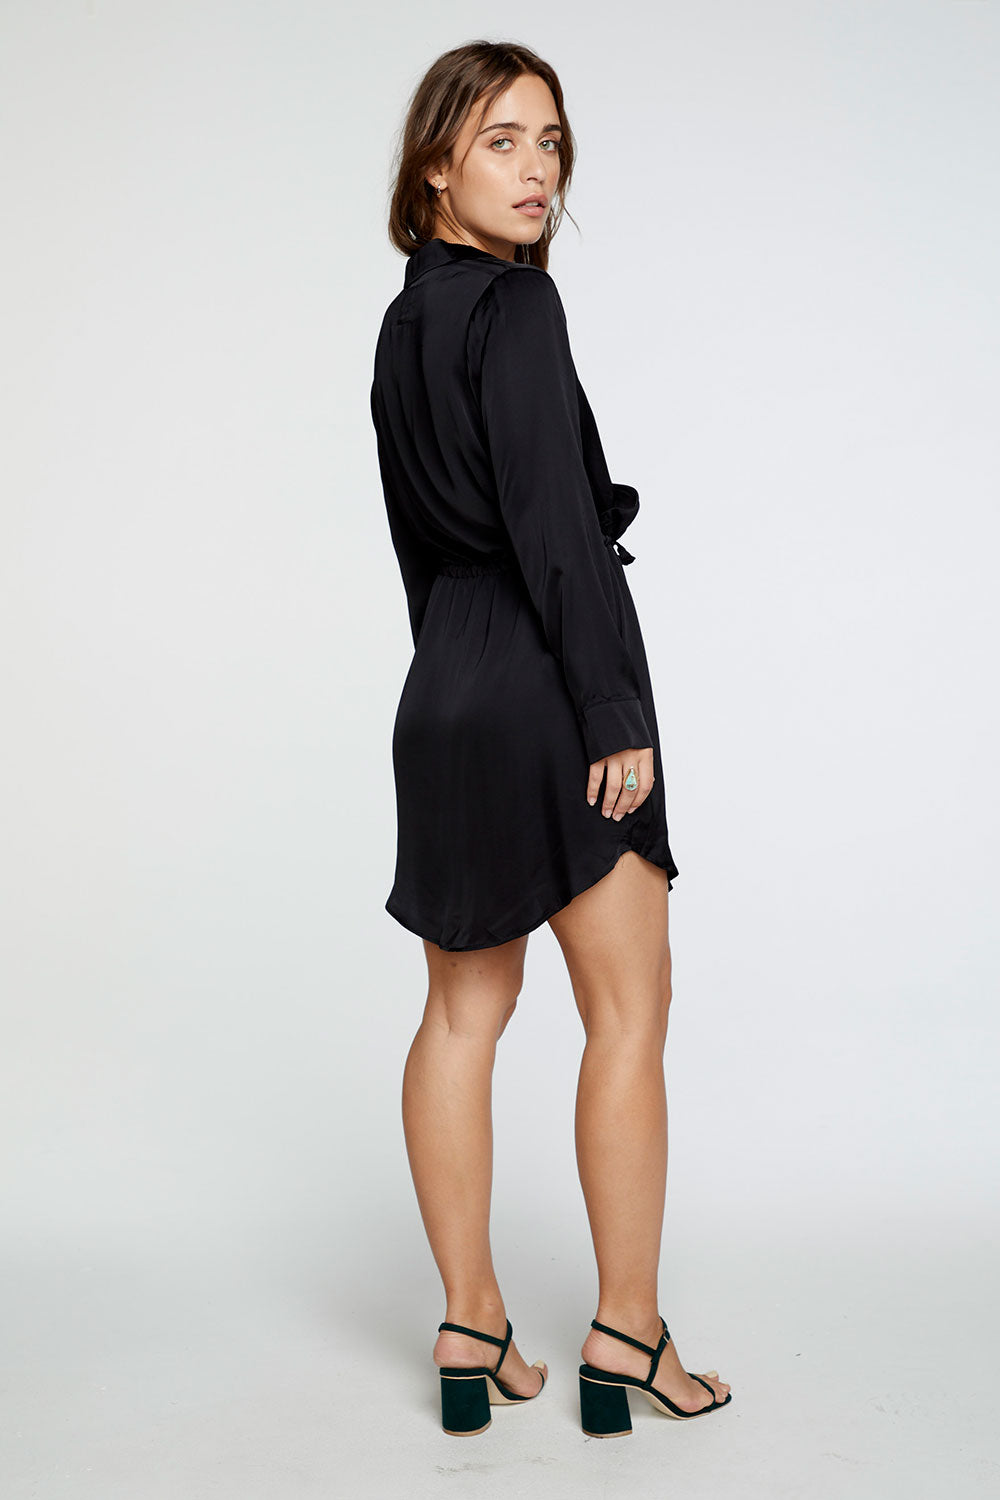 Silky Basics Long Sleeve Collared Surplice Dress in True Black